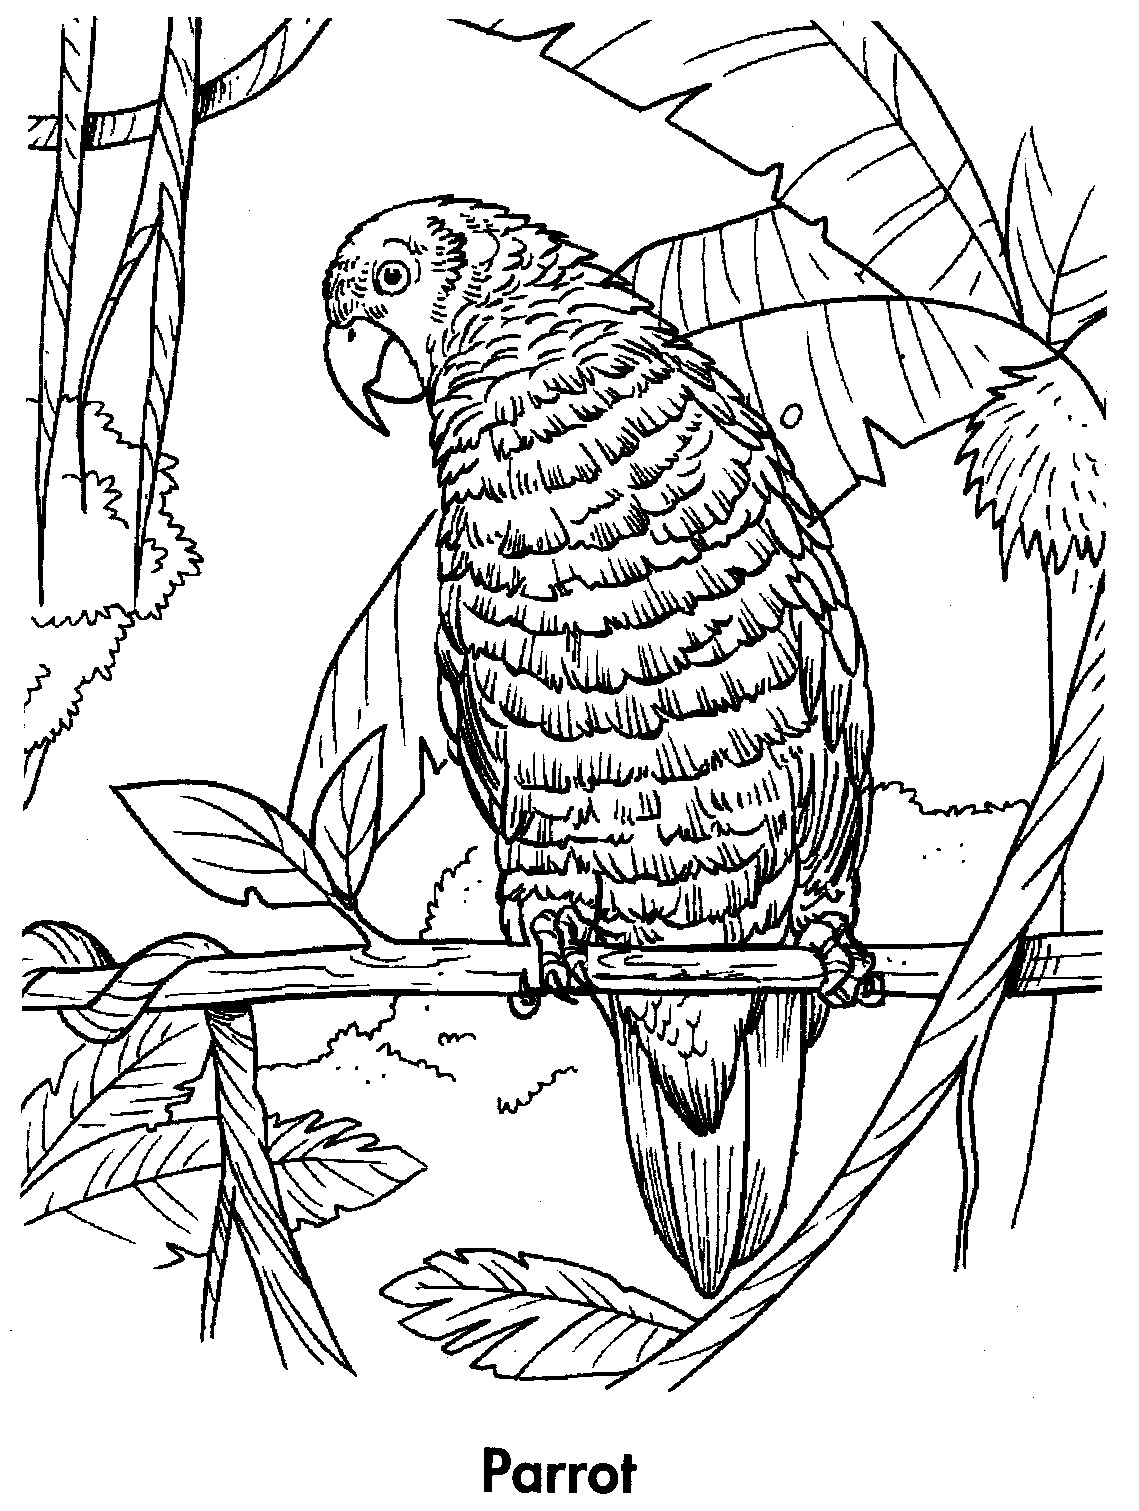 coloring parrot for kids parrot coloring pages coloringbay coloring for parrot kids